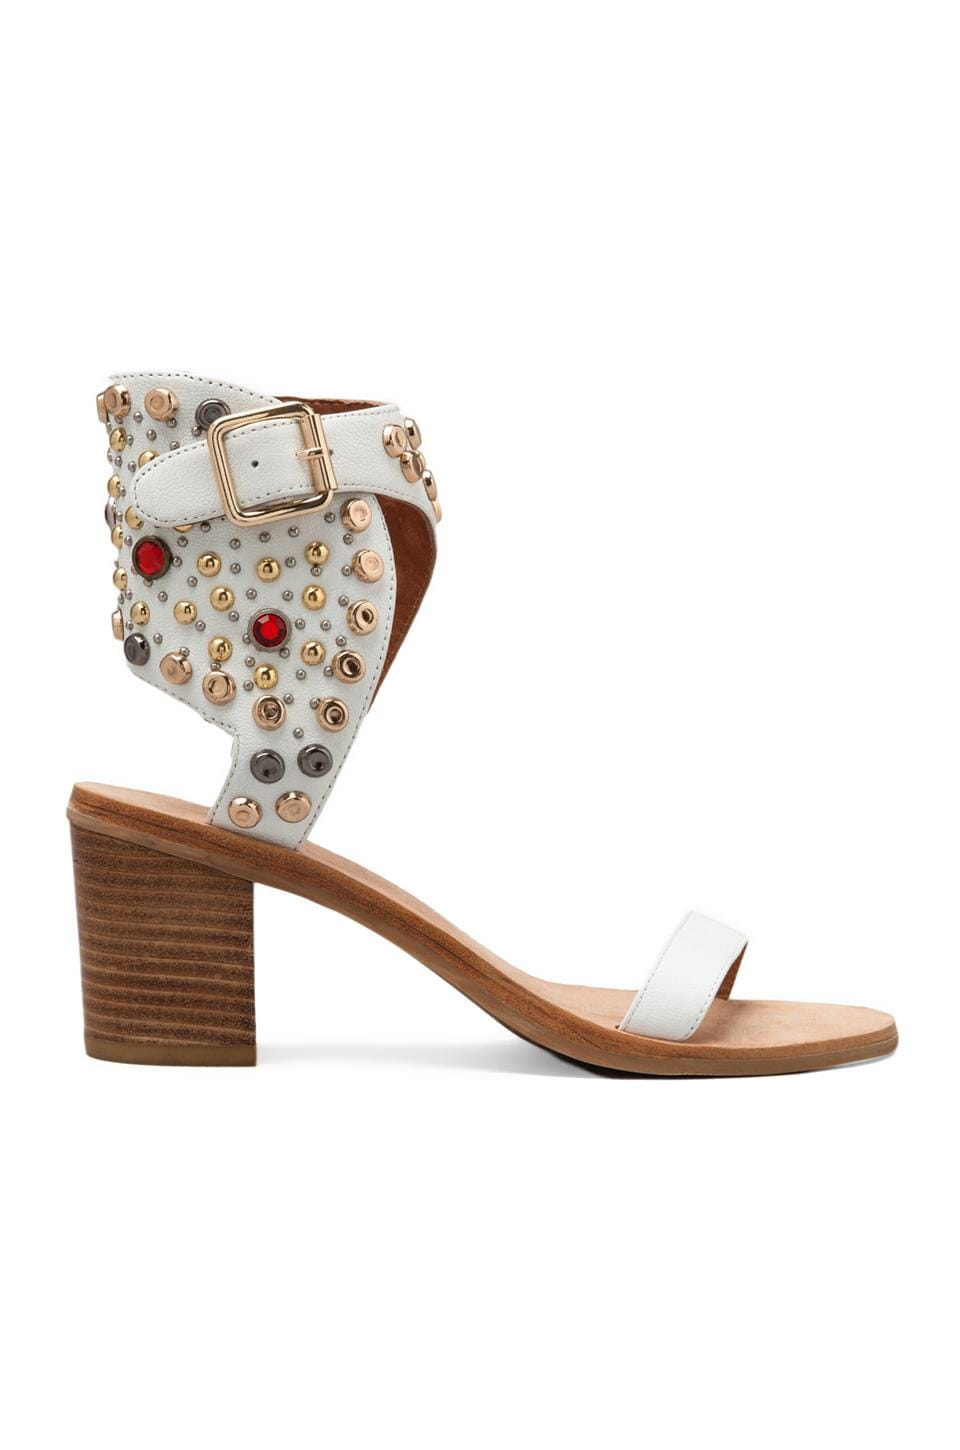 Jeffrey Campbell Seneca in White Leather Multi